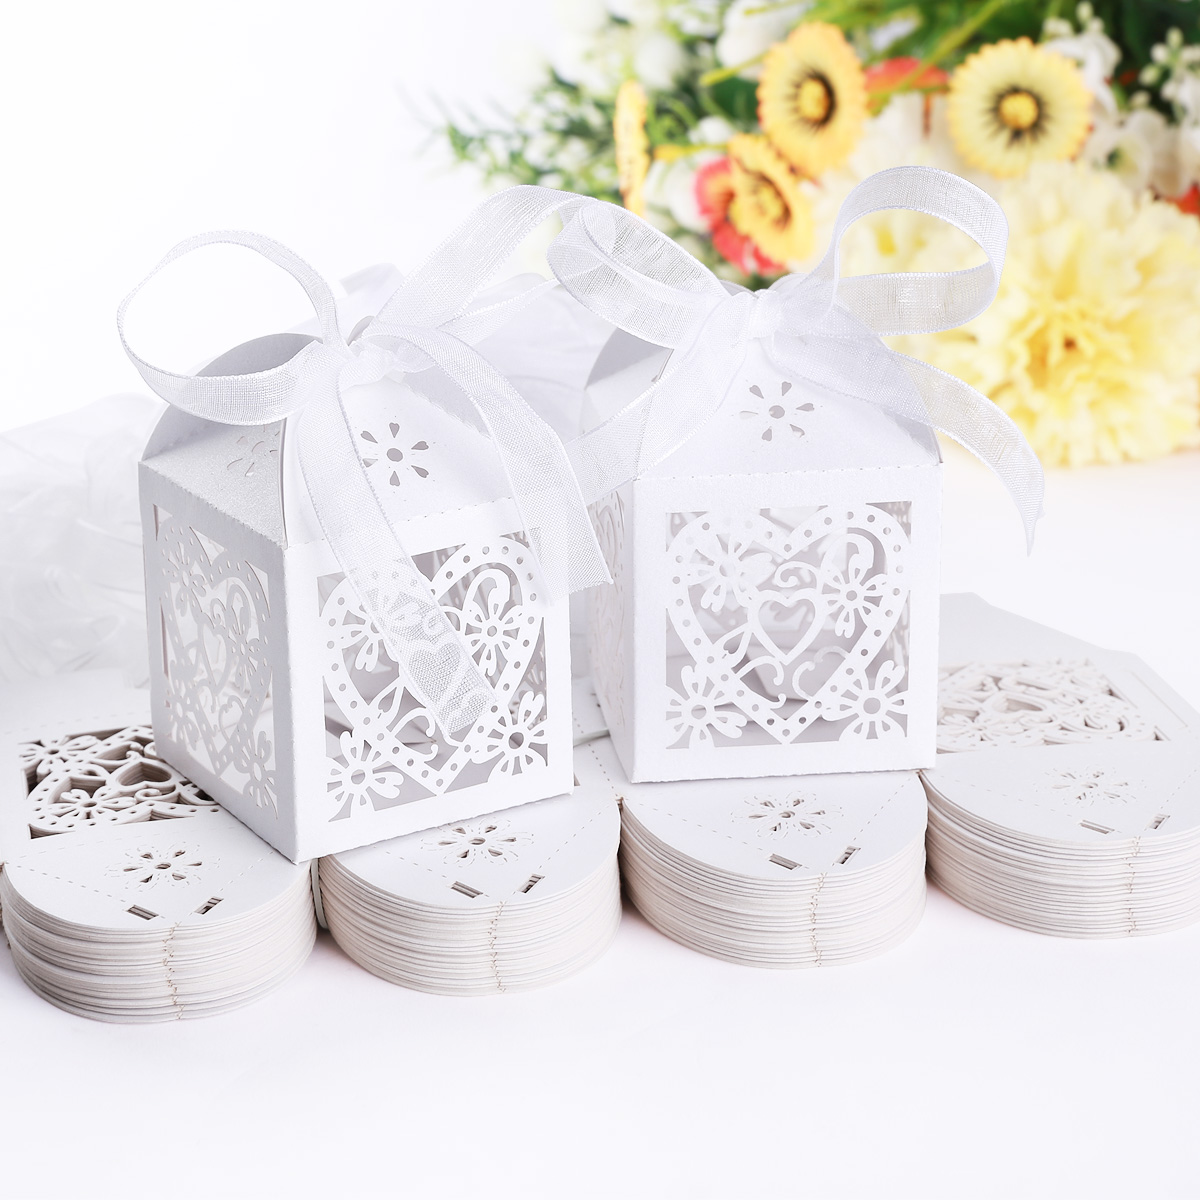 10X Heart Shaped Craft Paper Candy Box Wedding Party Sweets Gift Box W